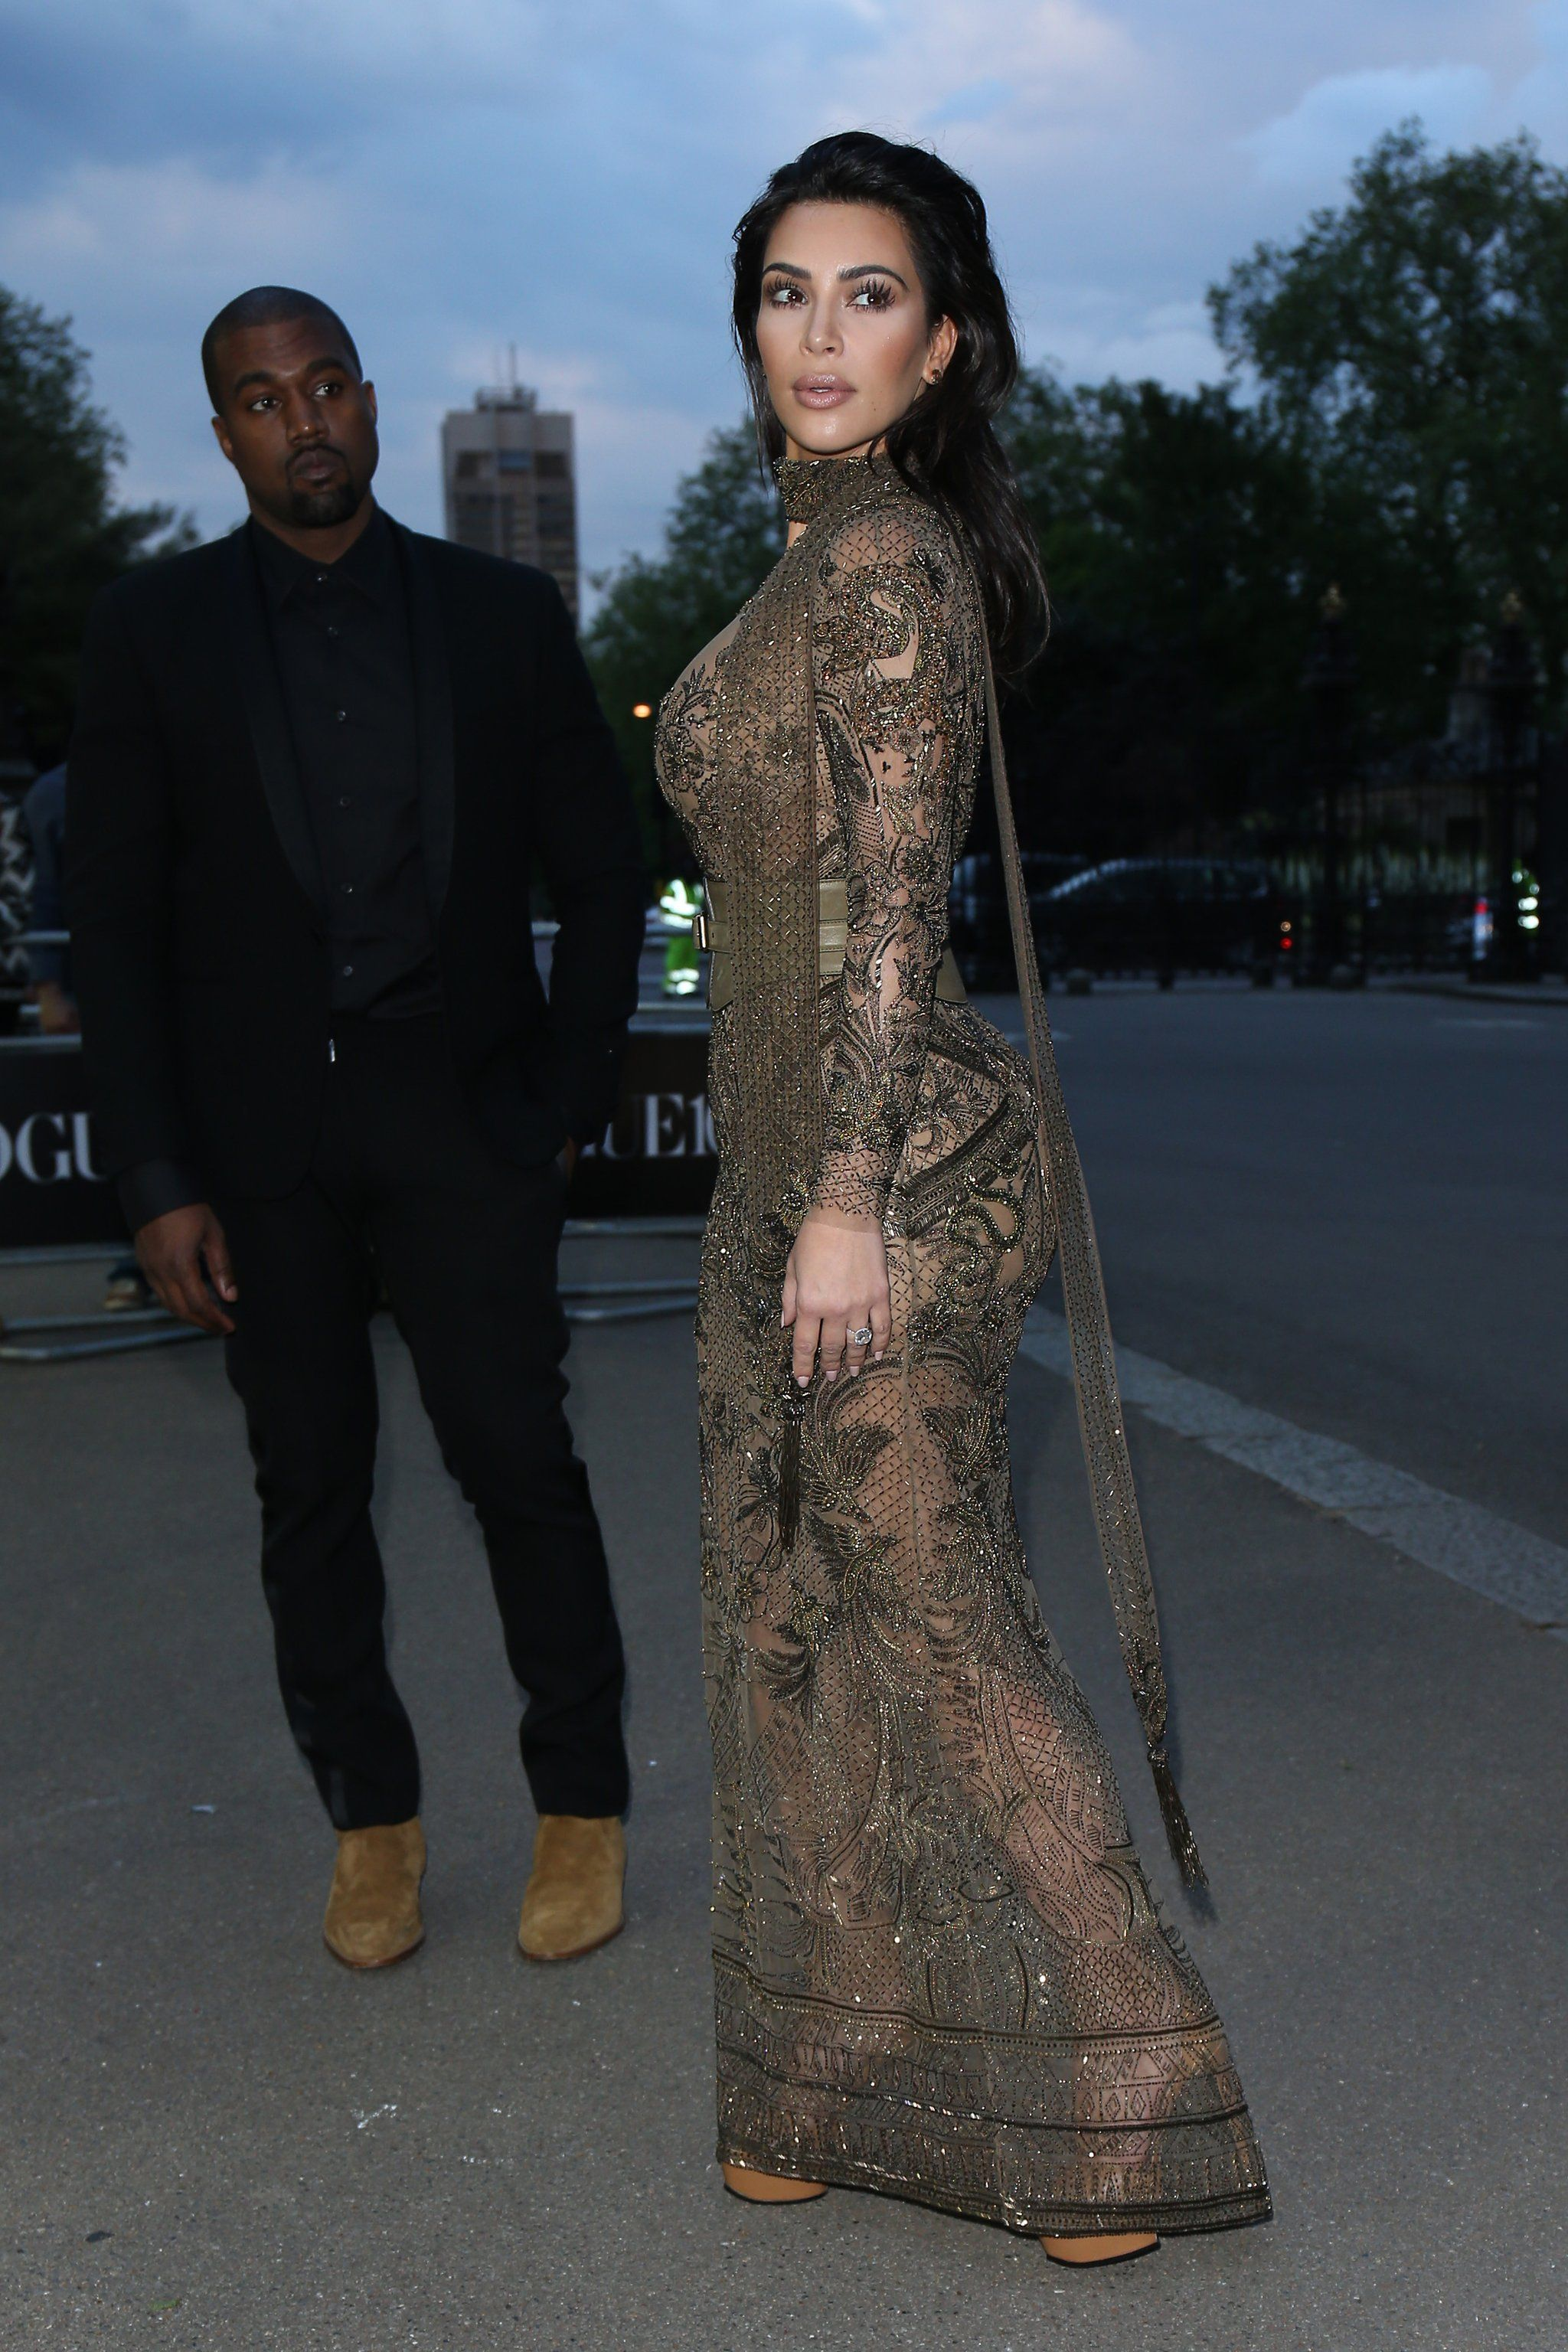 Kim kardashian leaves little to the imagination during a fashionable